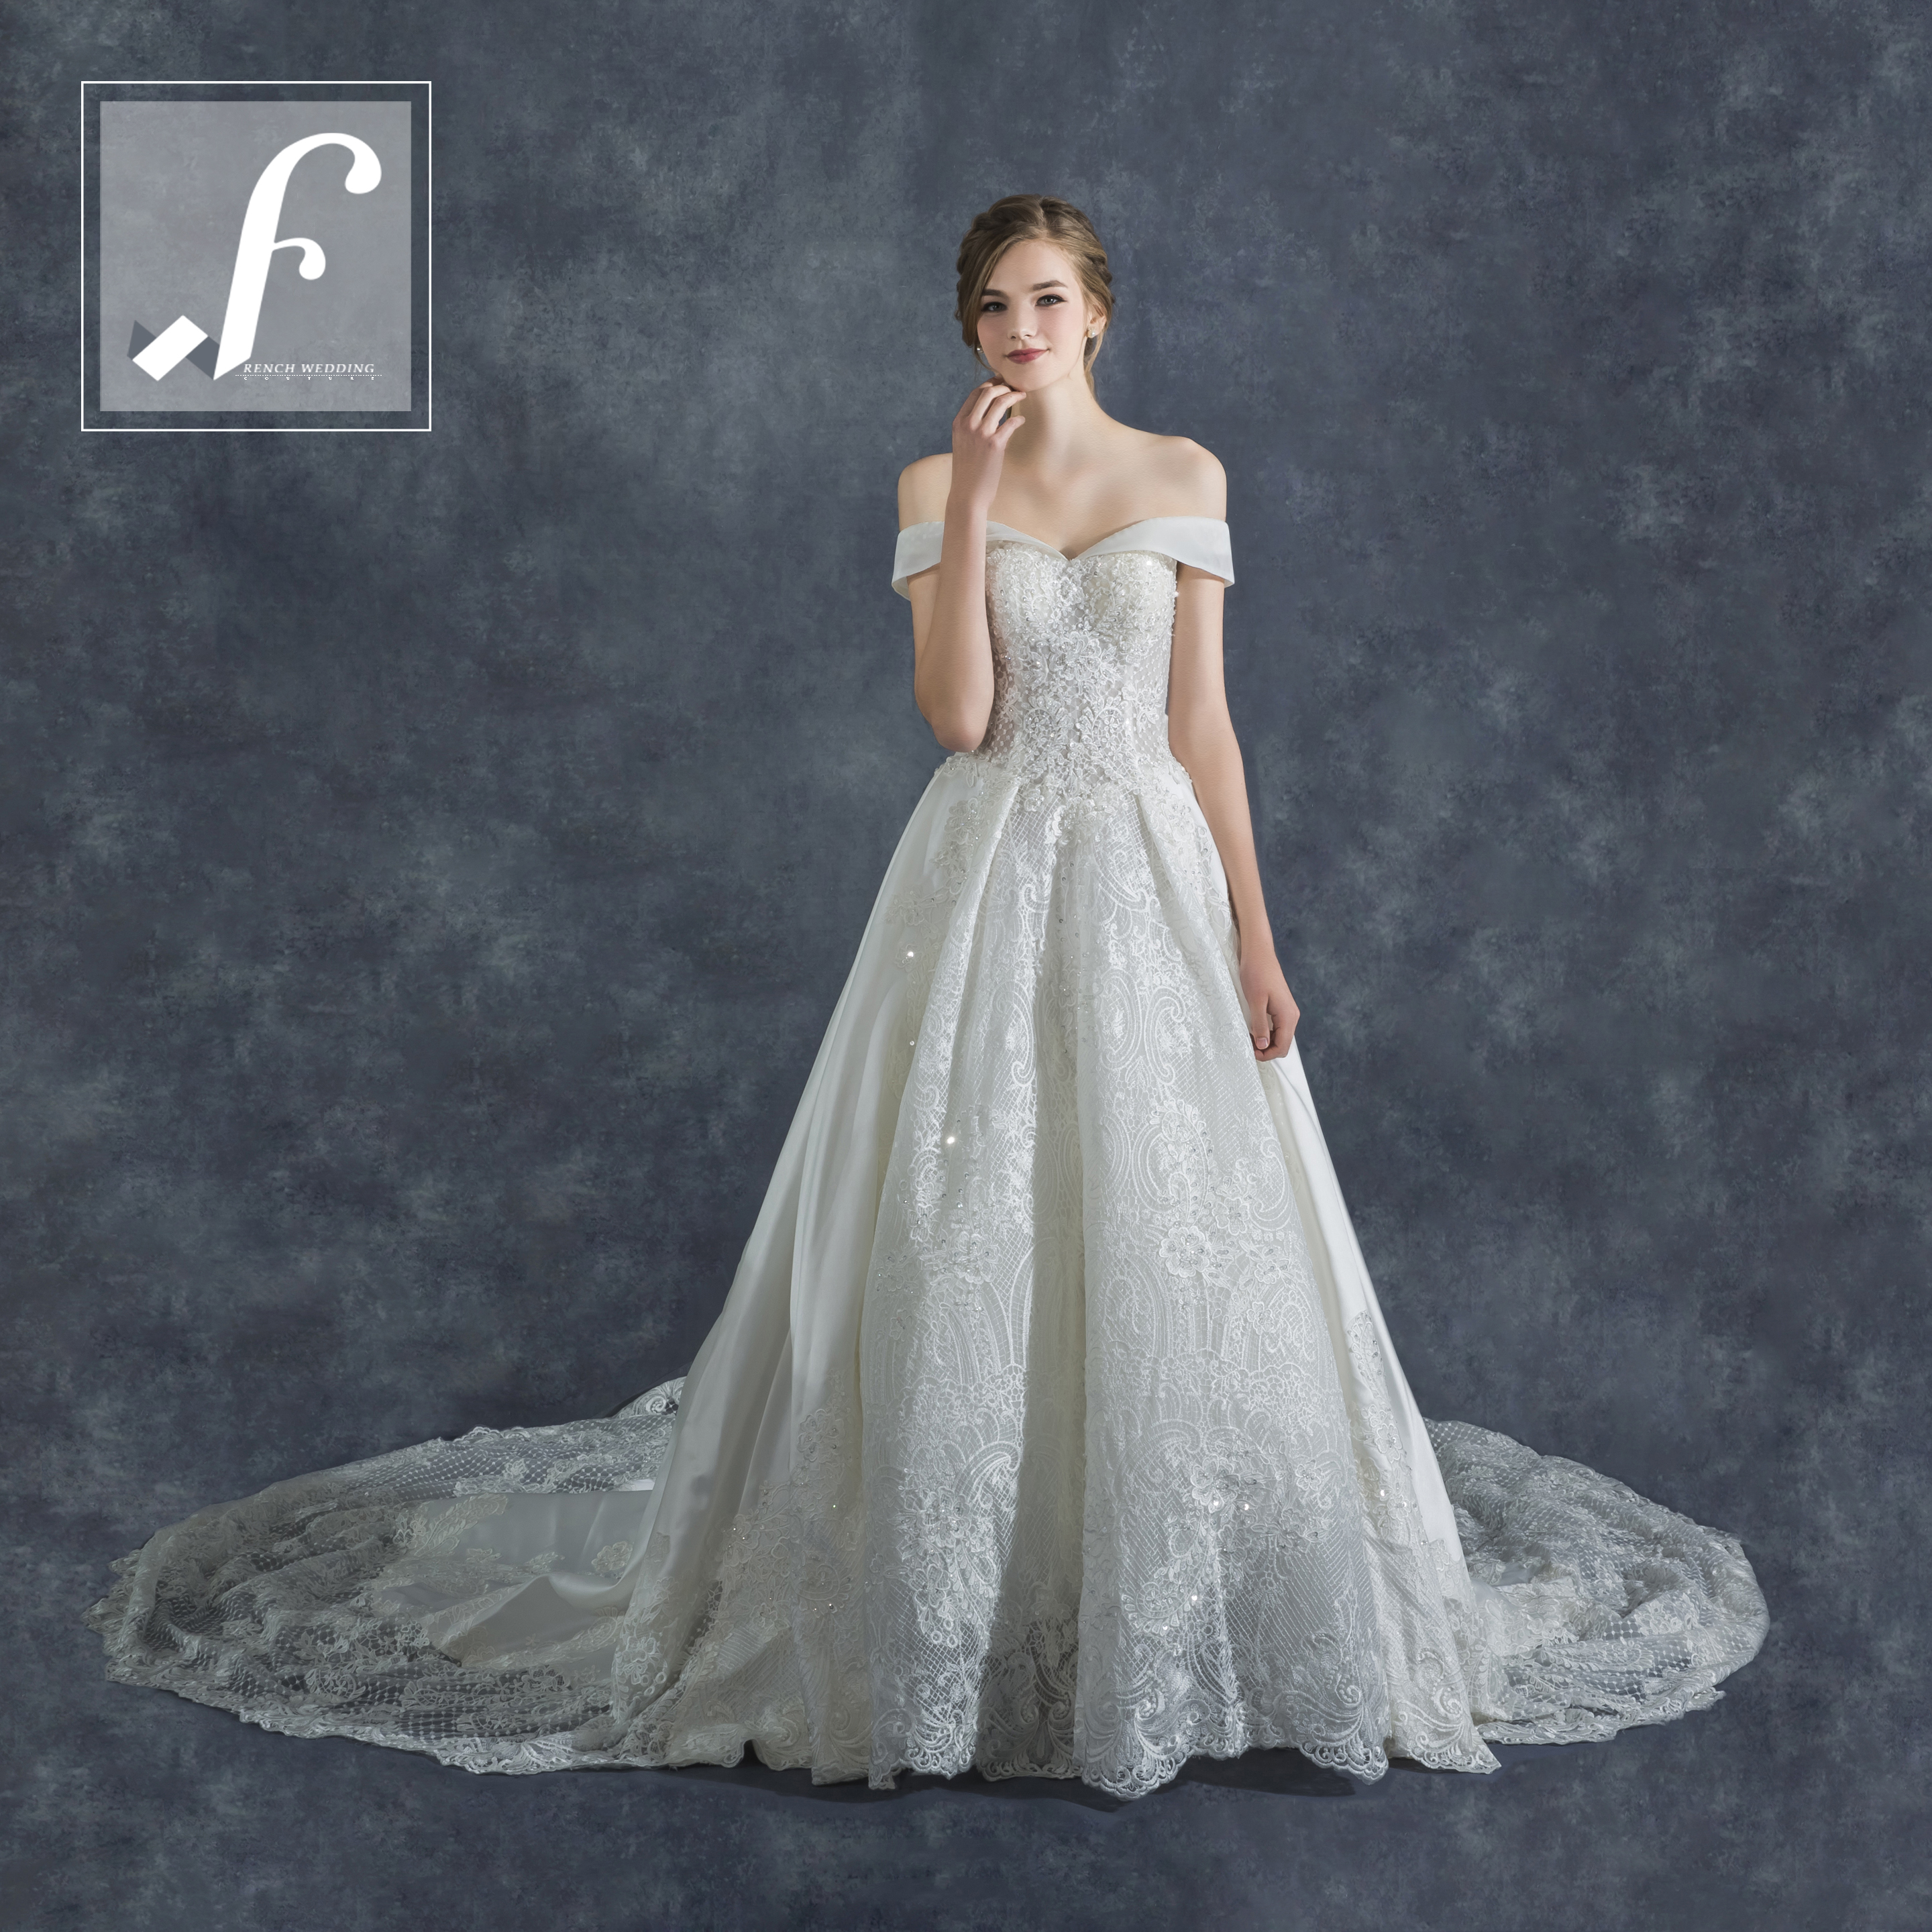 Wedding Gown Specialists Restoration Labs: Wedding GownsSingapore